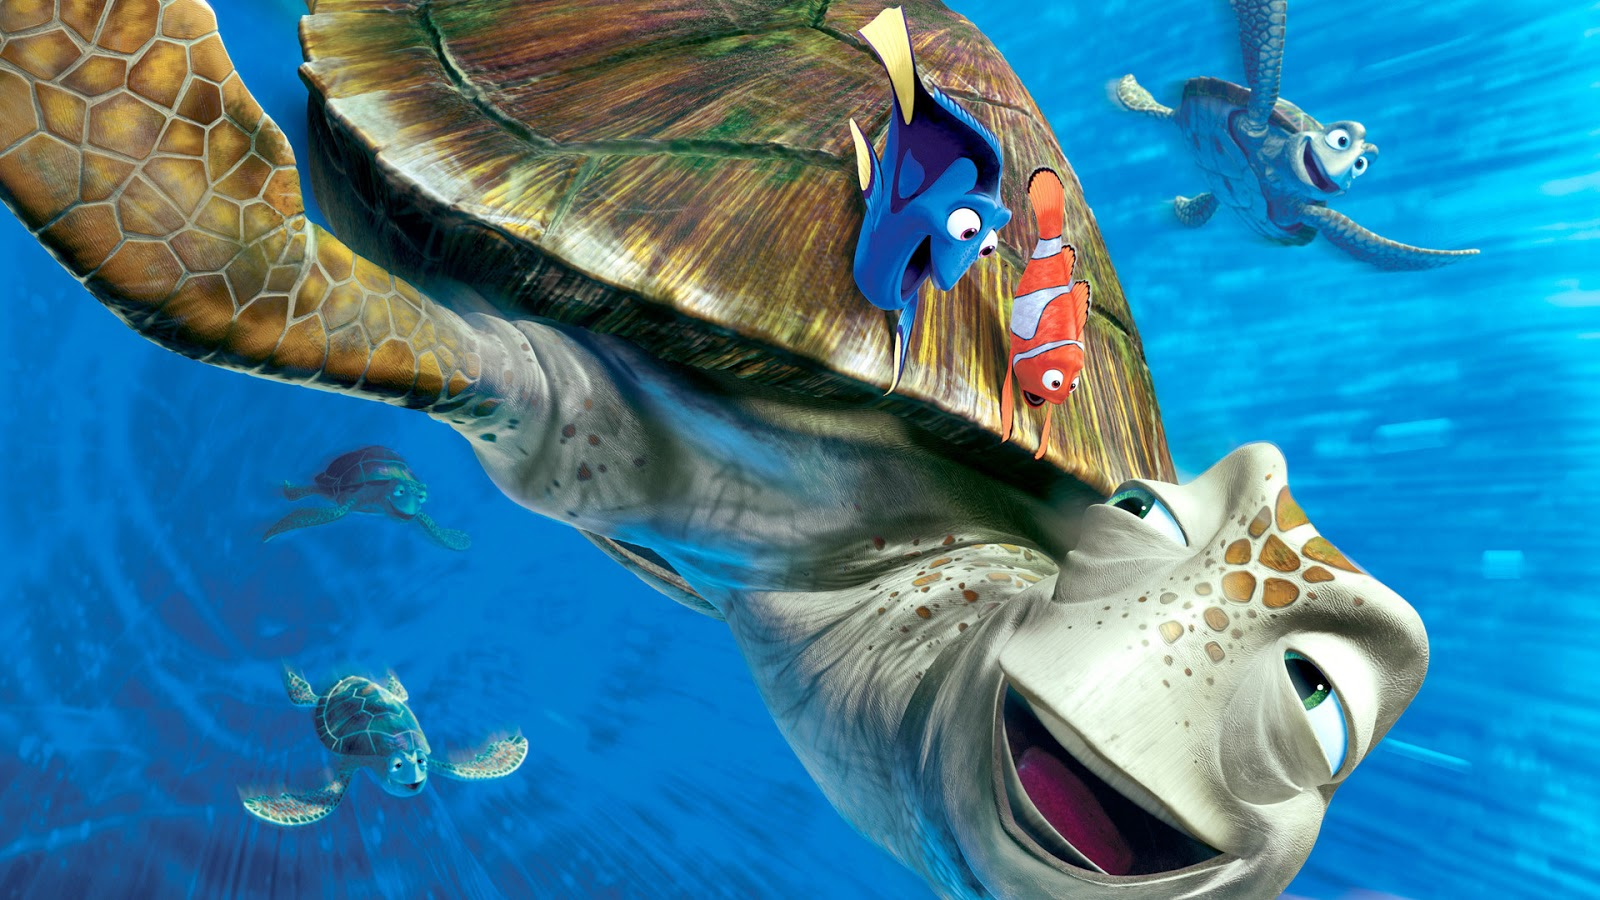 sea turtle in Finding Nemo